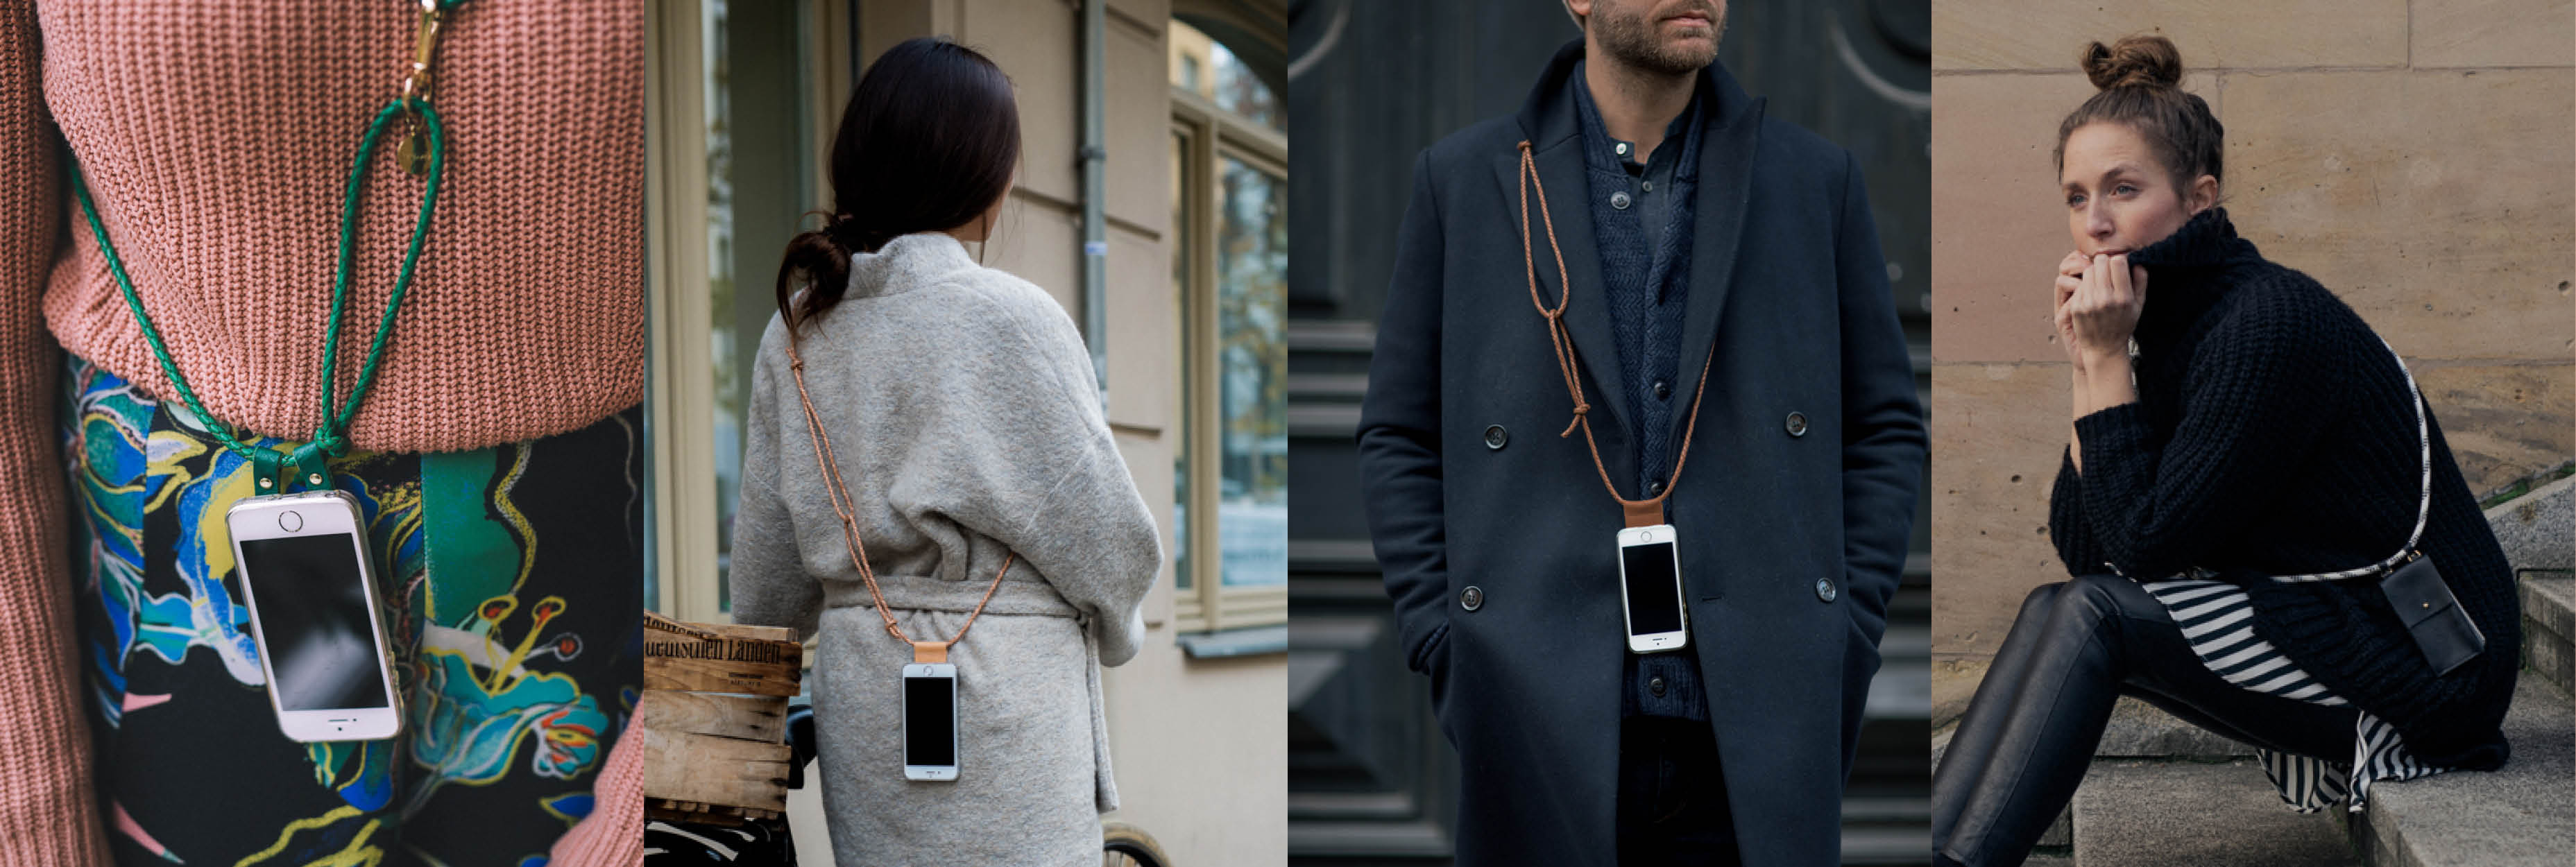 crossbody-iphone-huelle-iphone case-leather-accesory-smartphone-style-fashion